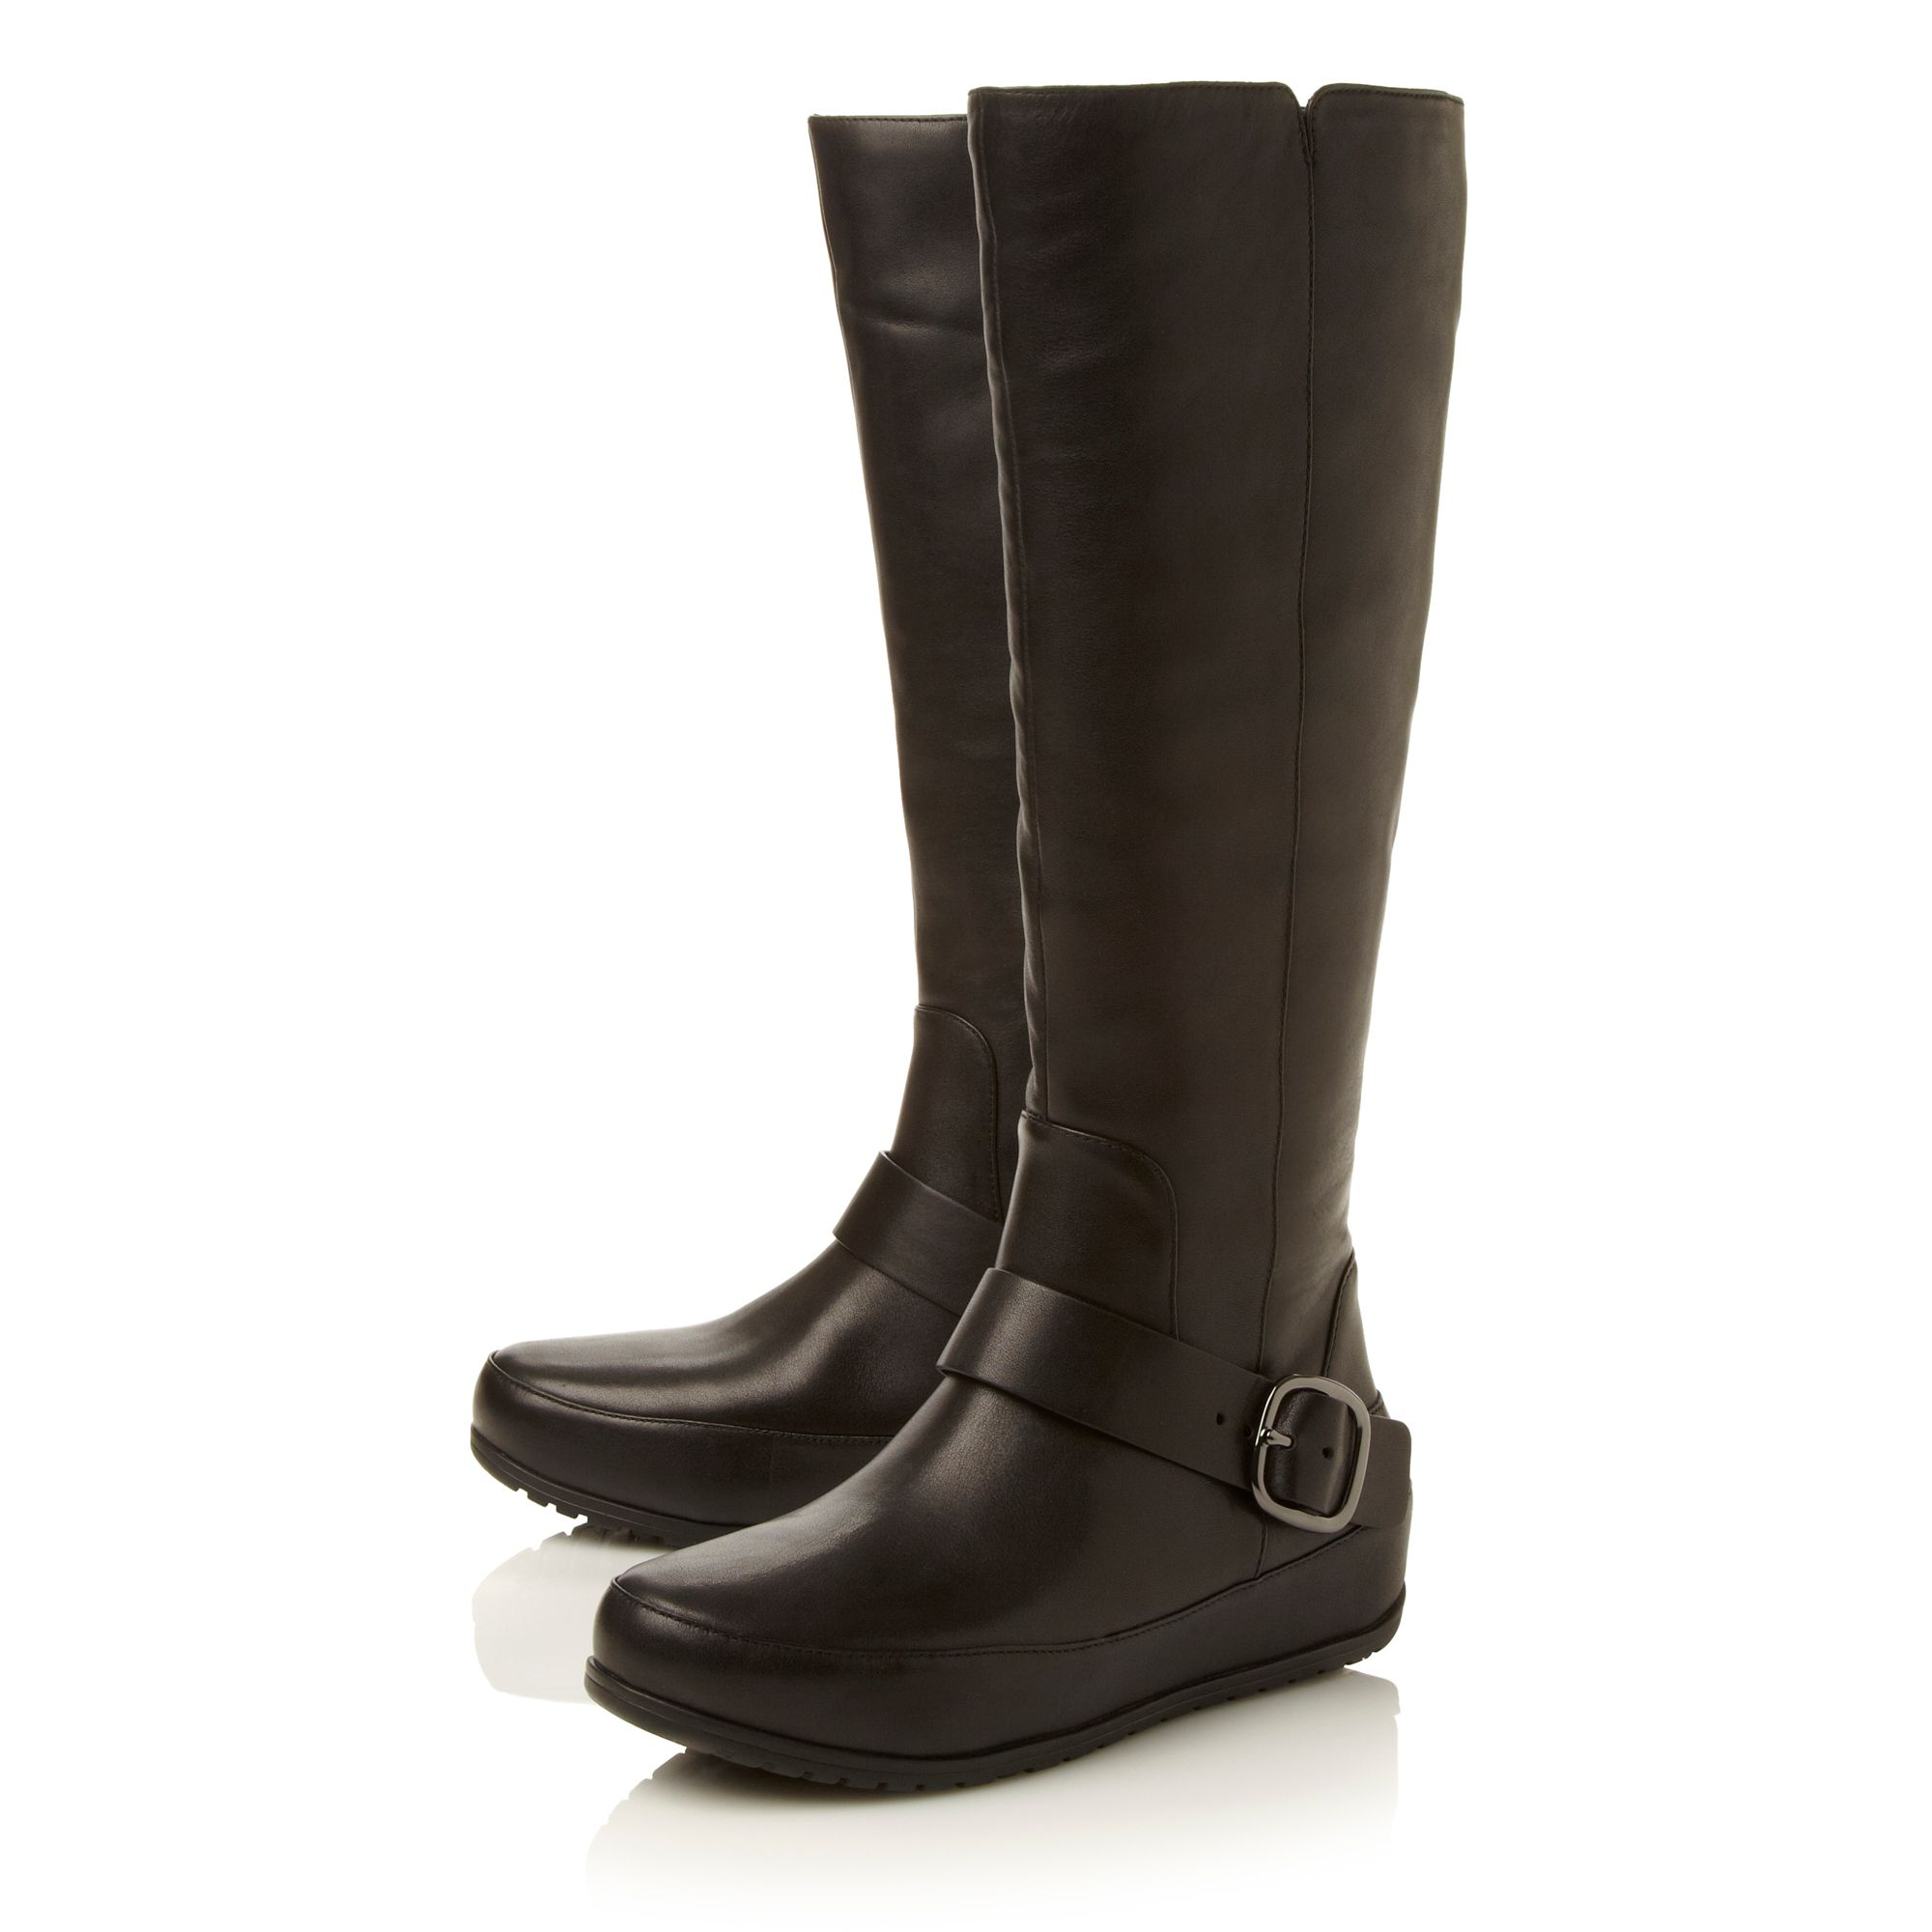 Due Buckle high leg boots